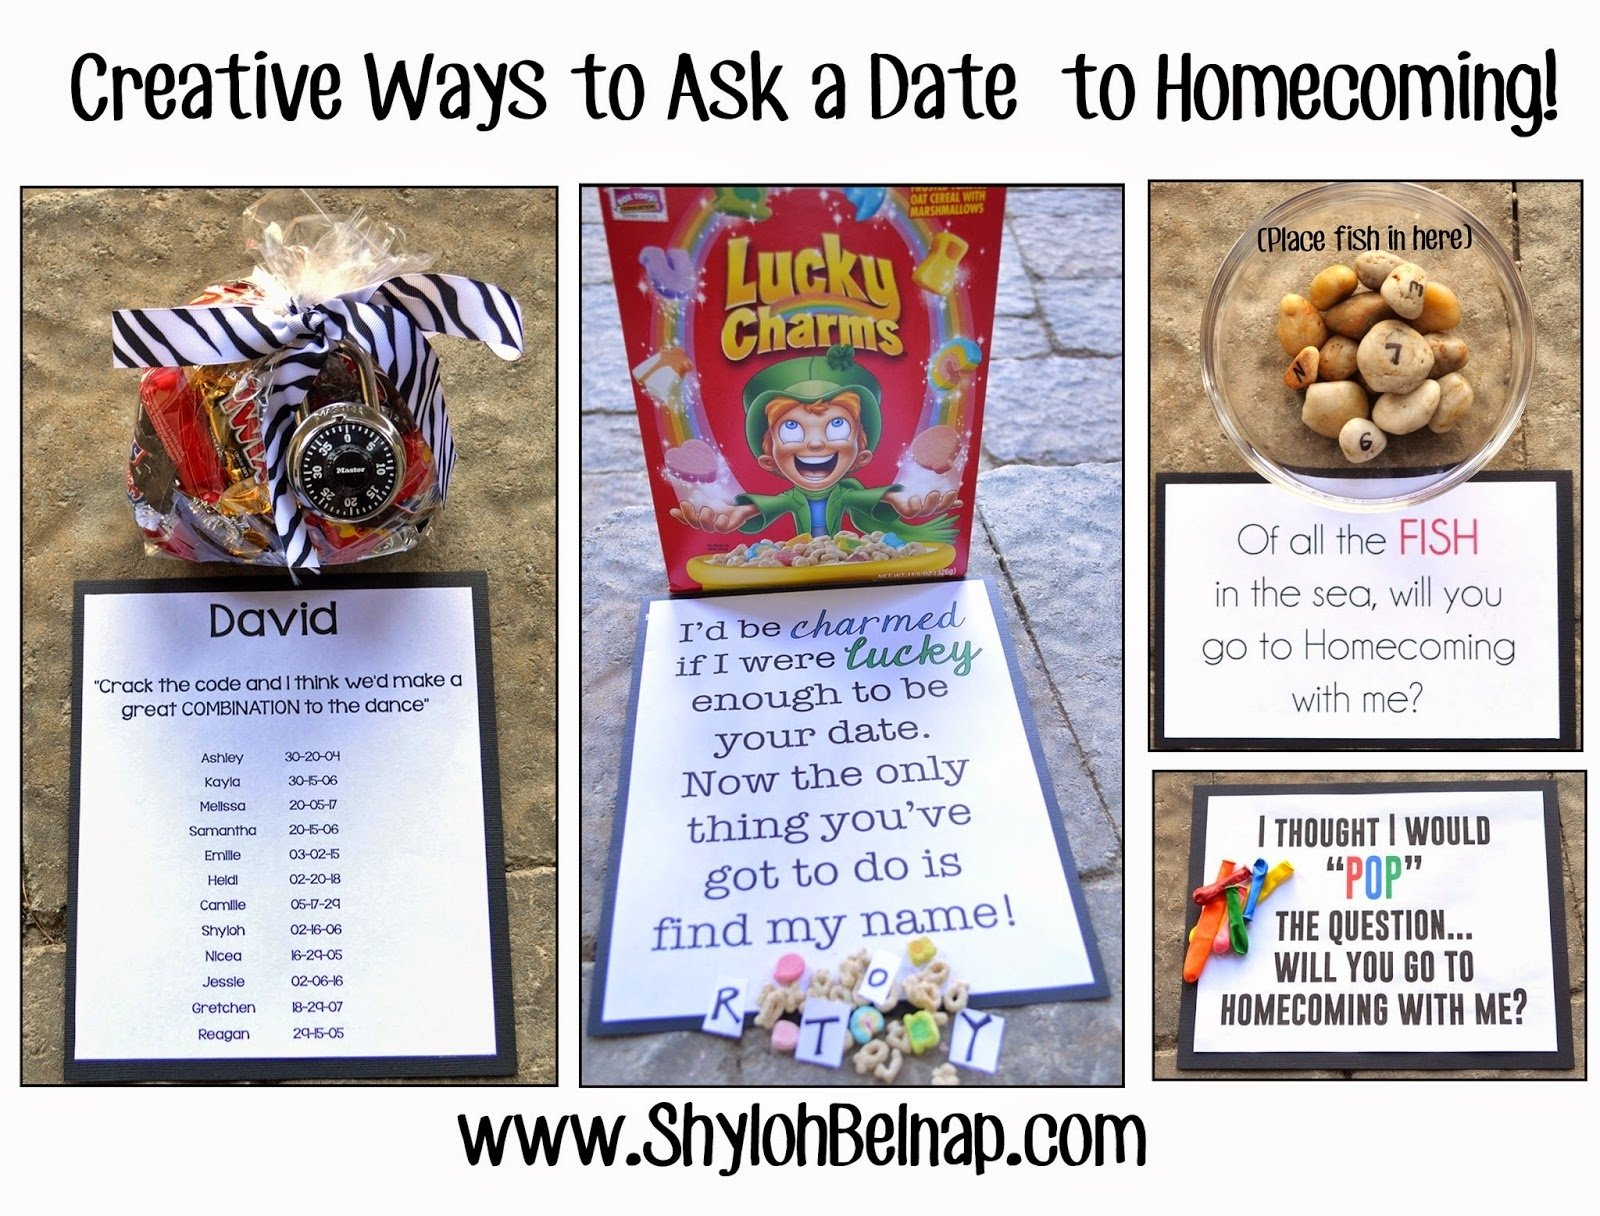 shyloh belnap: creative ways to ask a date to homecoming!